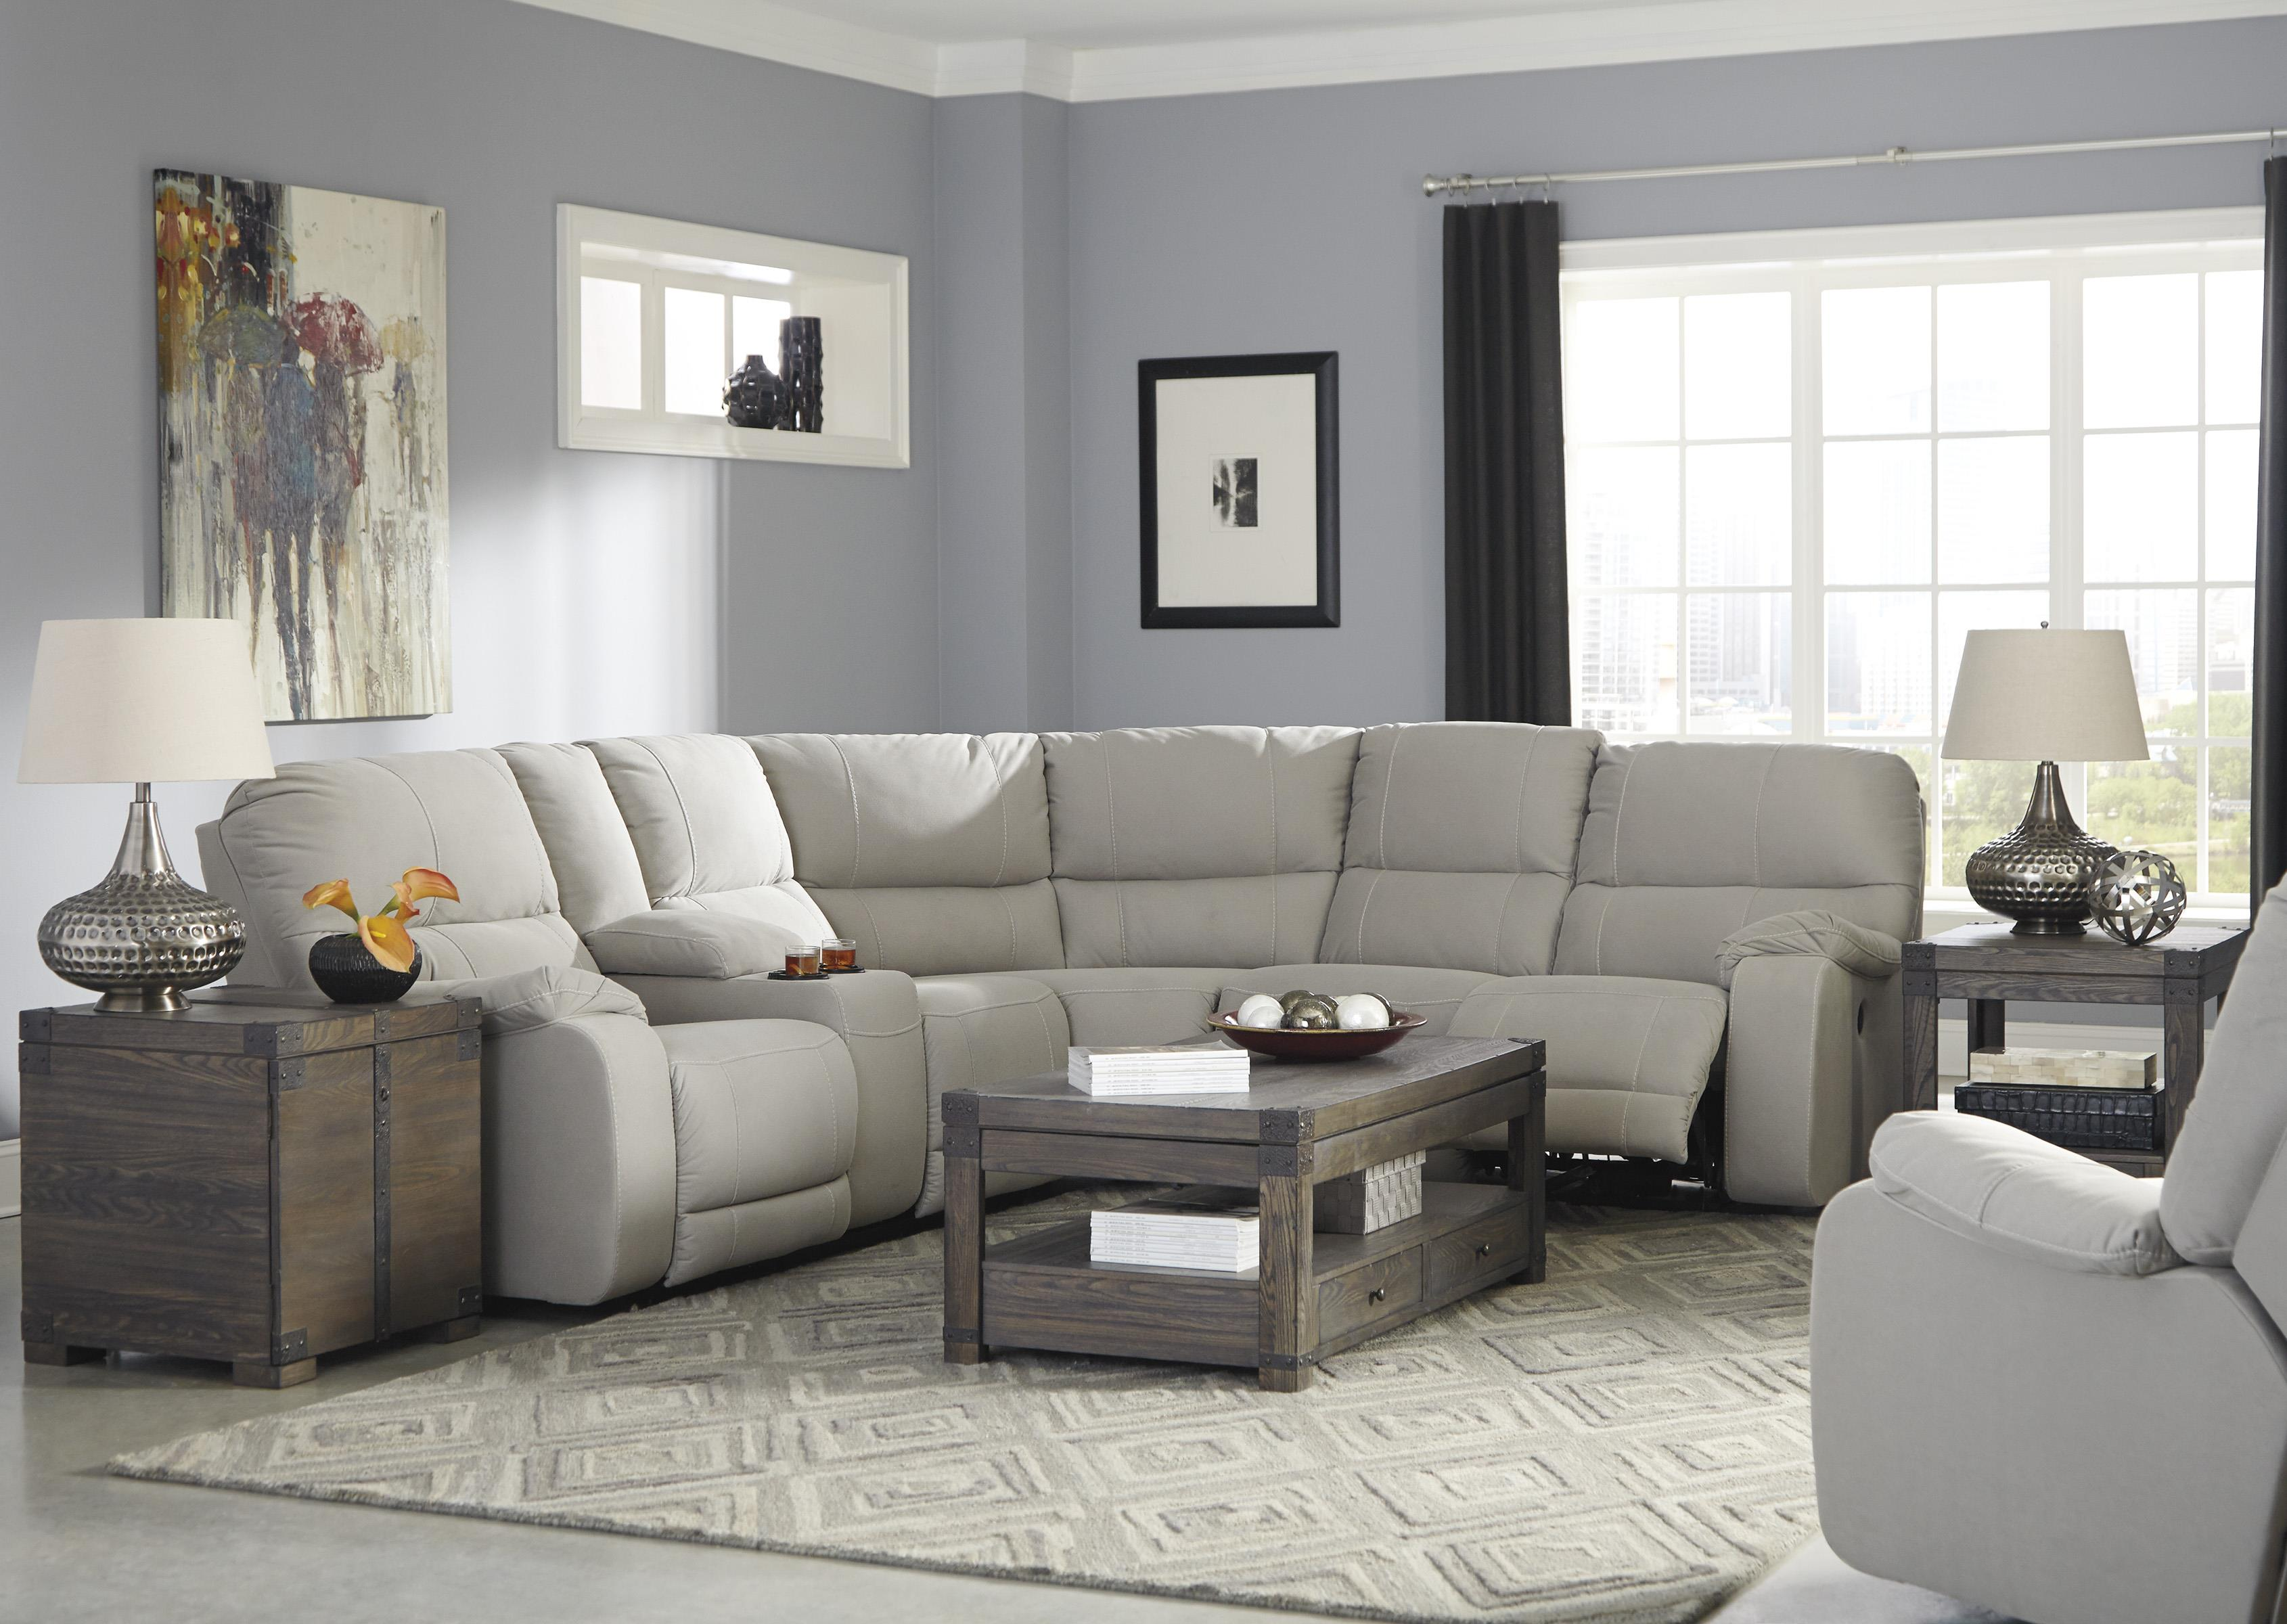 Benchcraft Bohannon Reclining Living Room Group - Item Number: 57401 Living Room Group 1